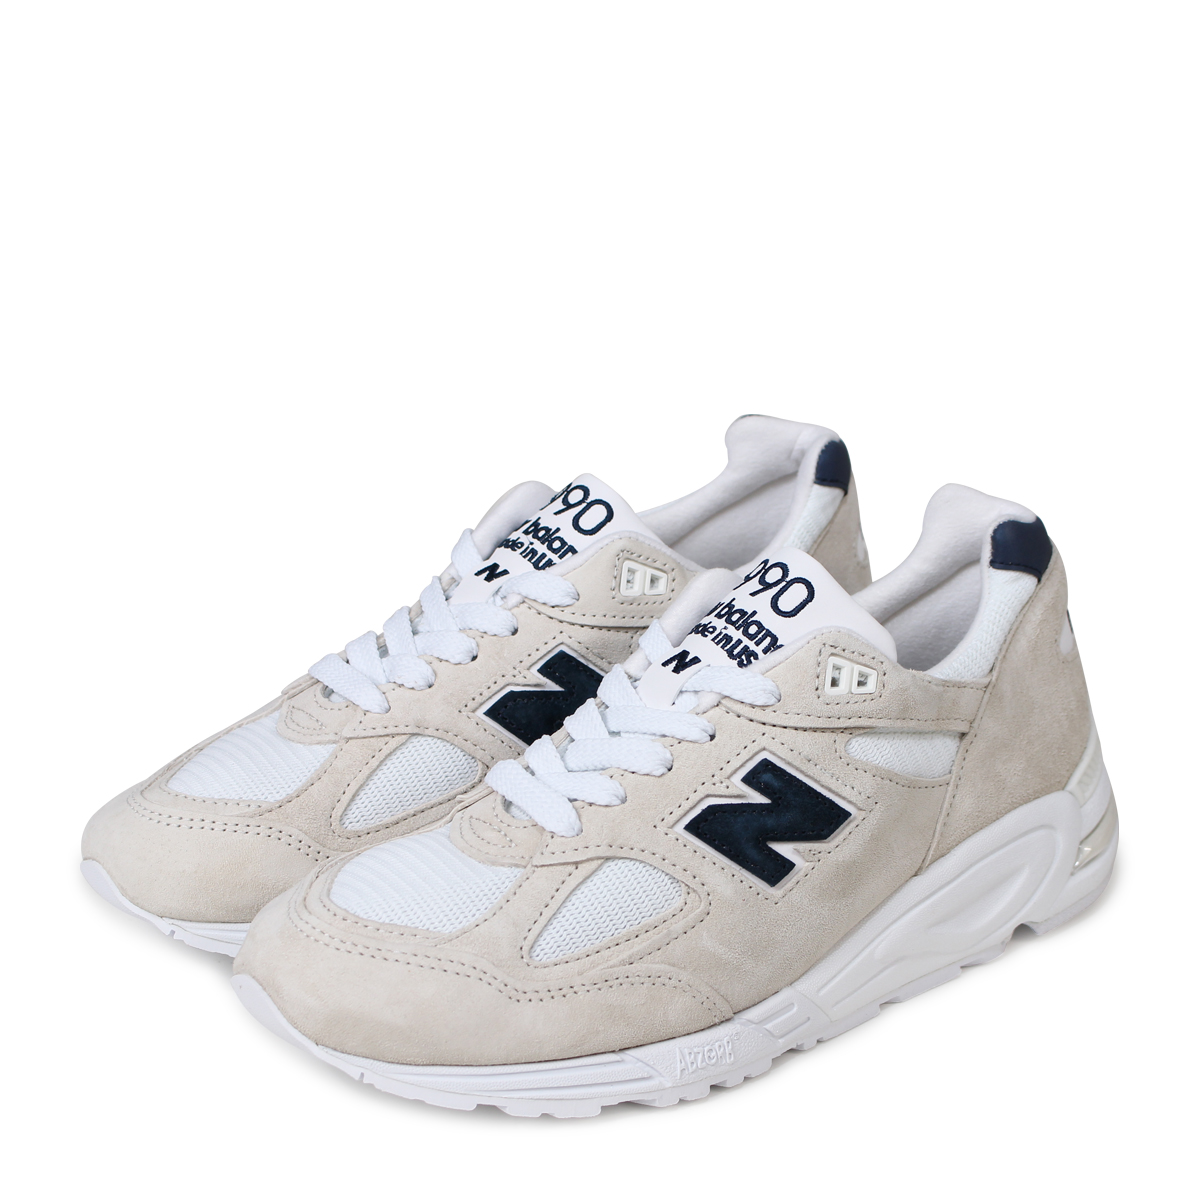 online store ff7fd cfeff new balance M990WE2 New Balance 990 men's sneakers D Wise MADE IN USA  off-white [193]